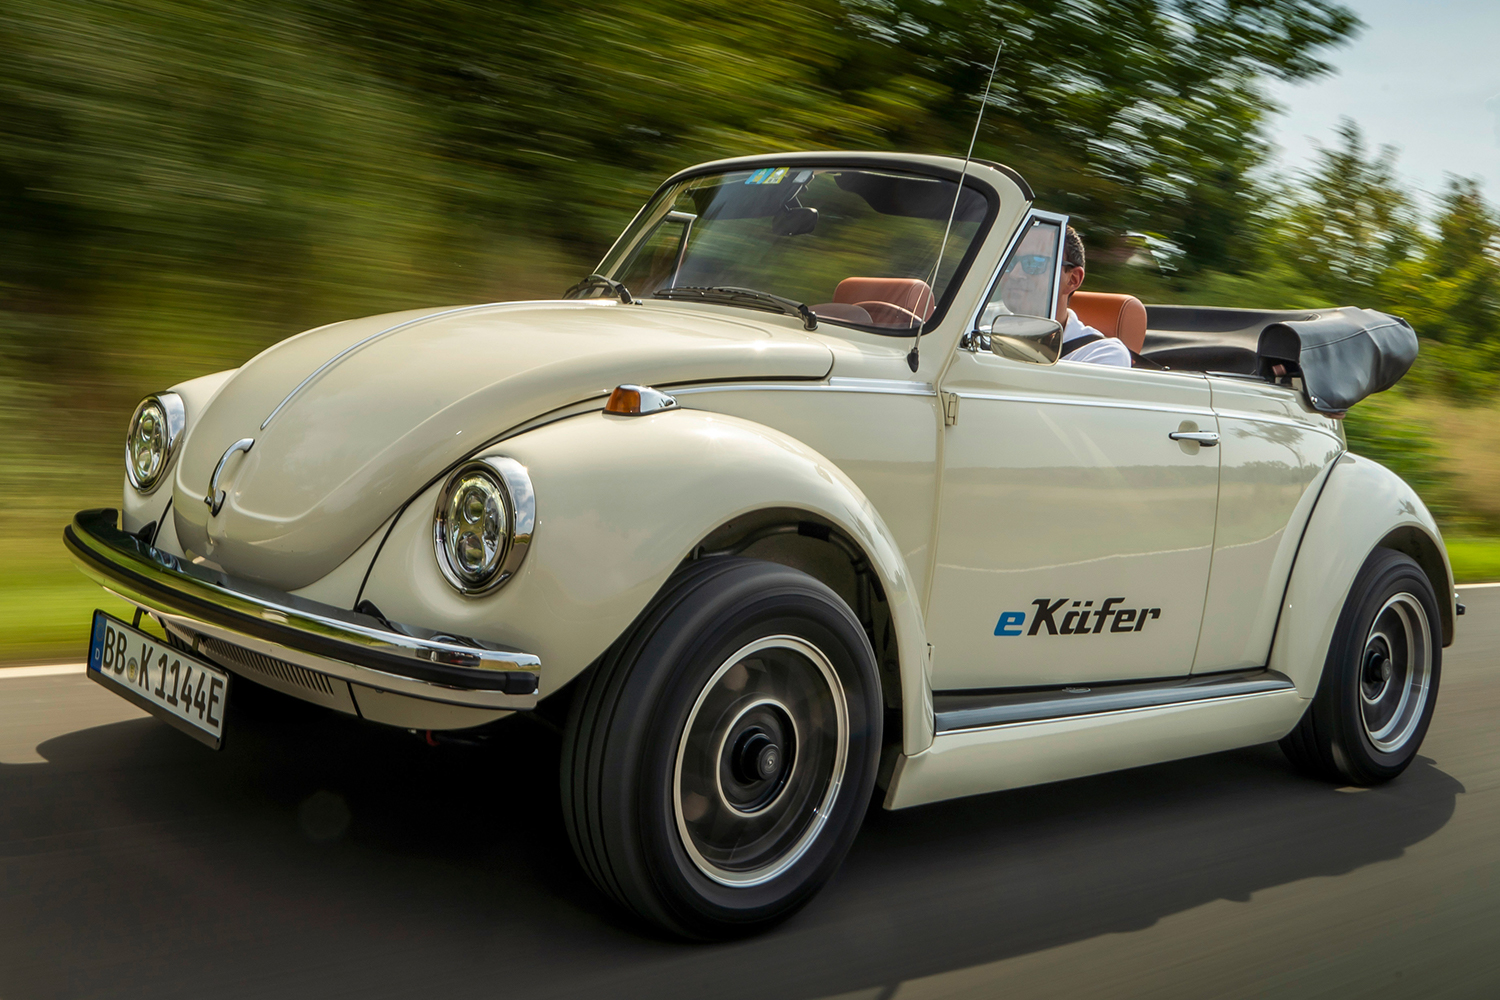 Volkswagen e-Beetle 1973 Super Beetle Electric Conversion